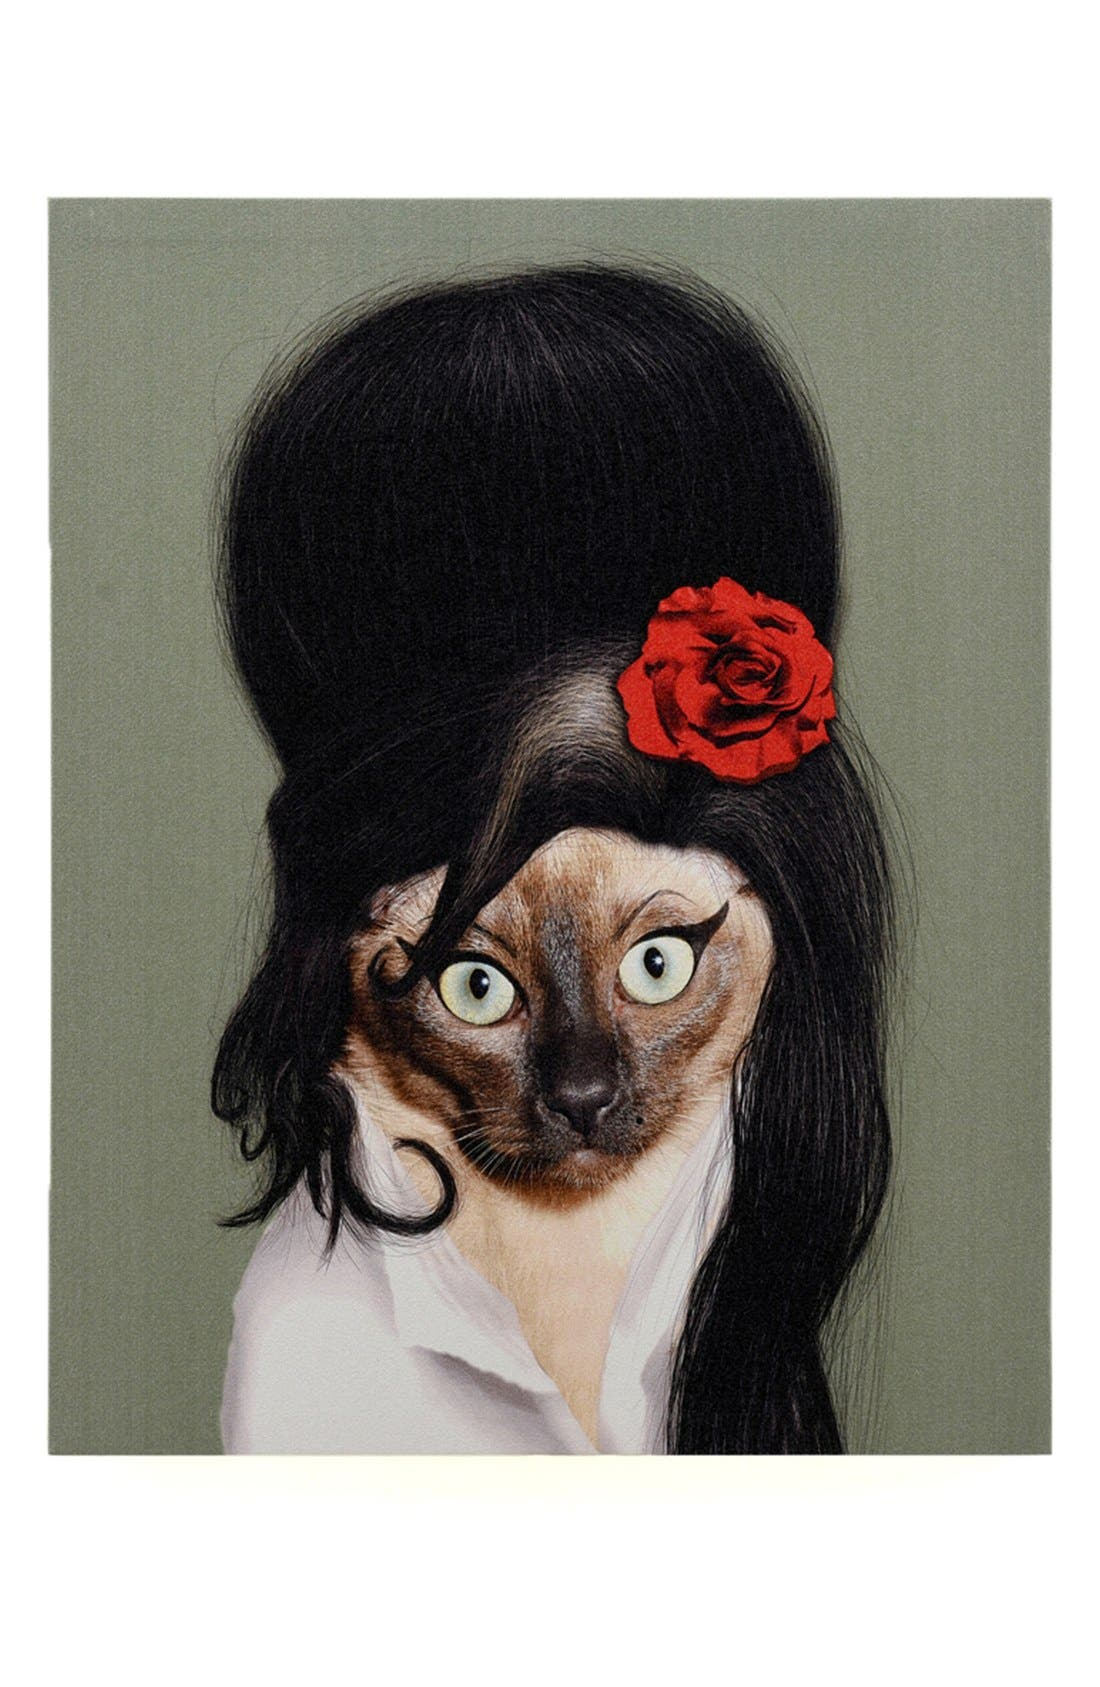 Alternate Image 1 Selected - Empire Art Direct 'Pets Rock™ - Tattoo' Giclée Wall Art